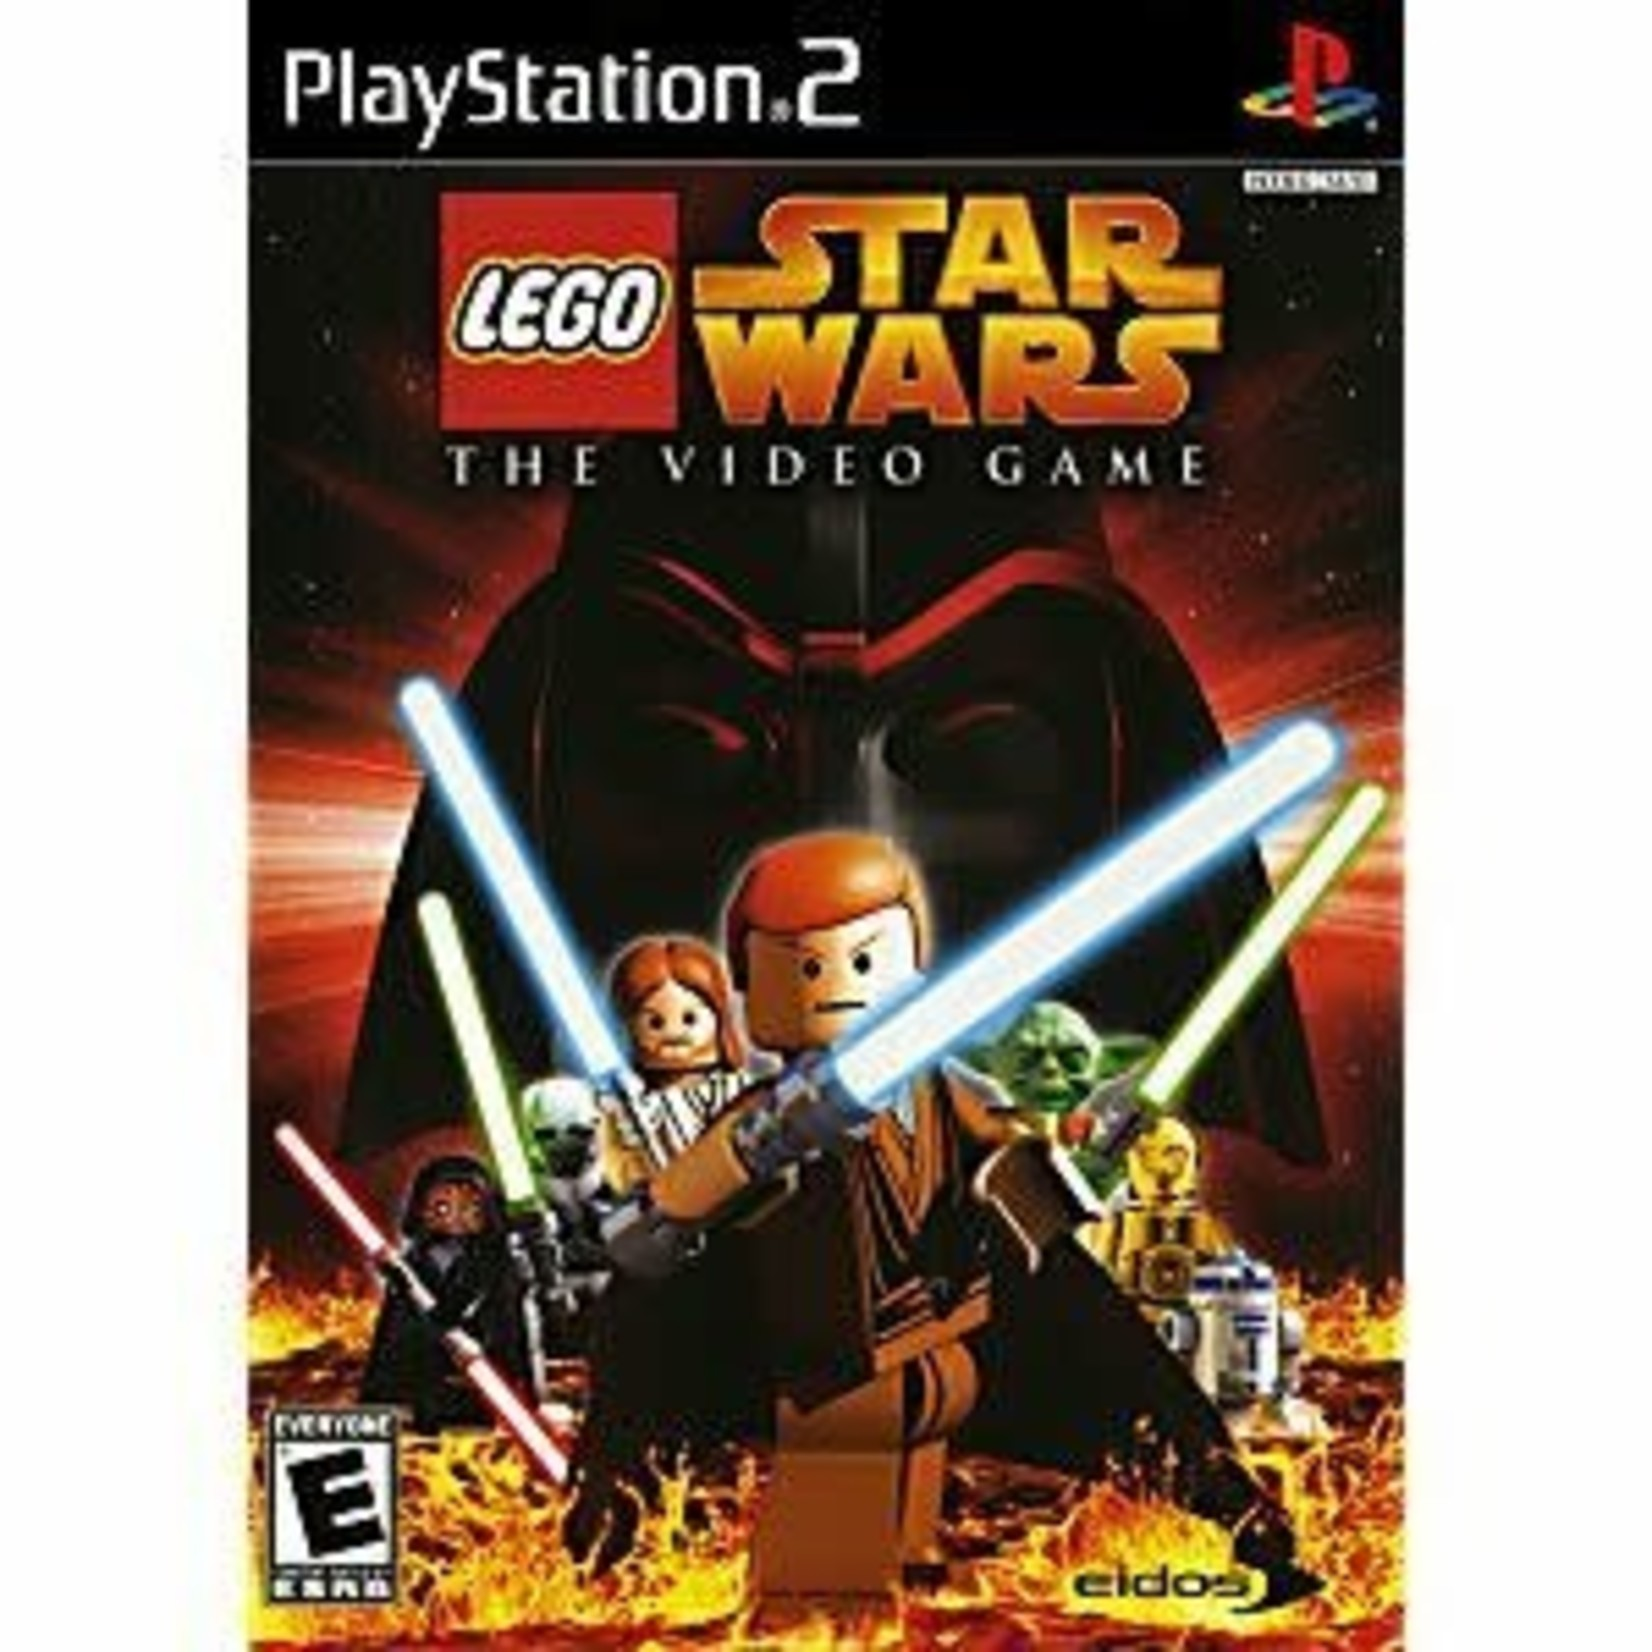 PS2U-LEGO STAR WARS THE VIDEO GAME